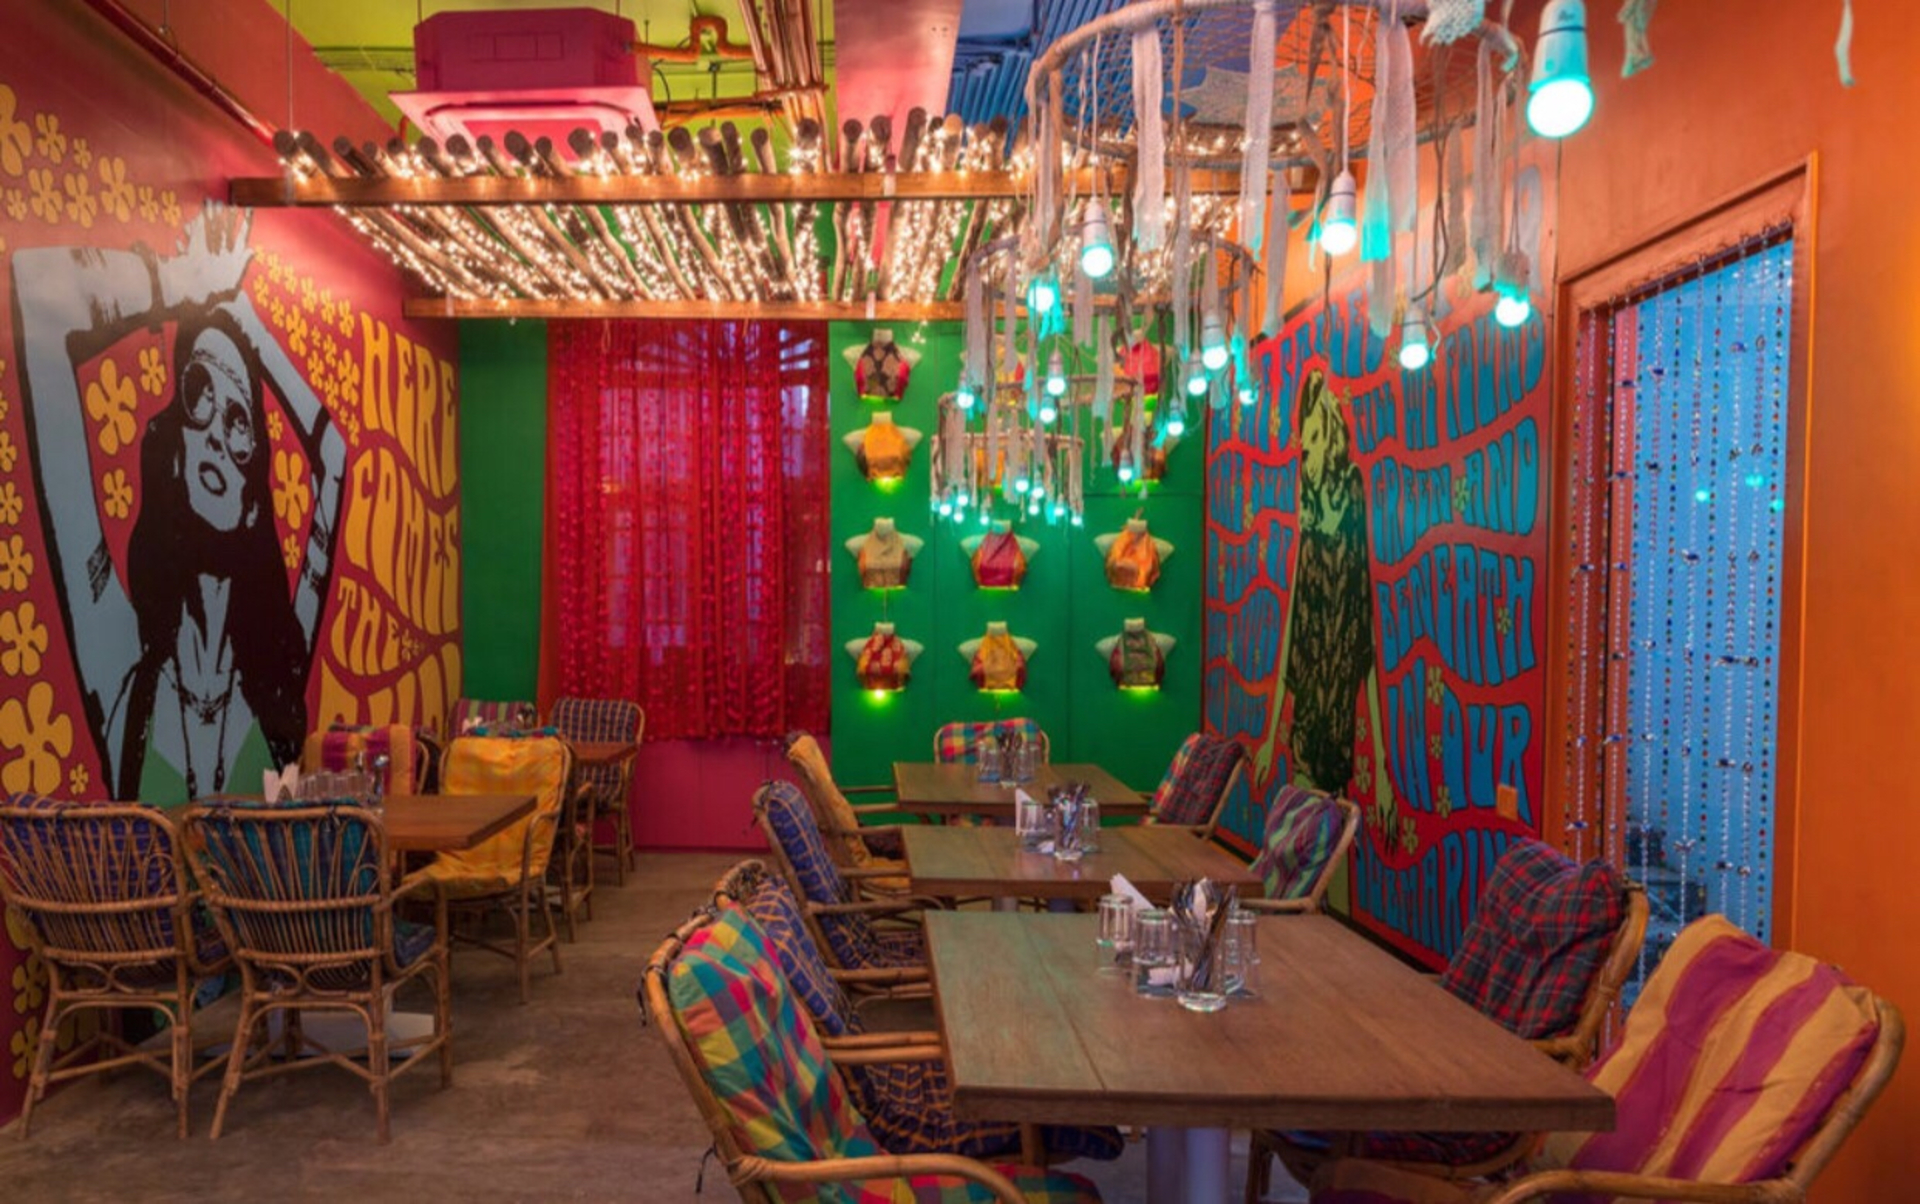 There's a Goan Themed Restaurant And It's Quite Amazing. image